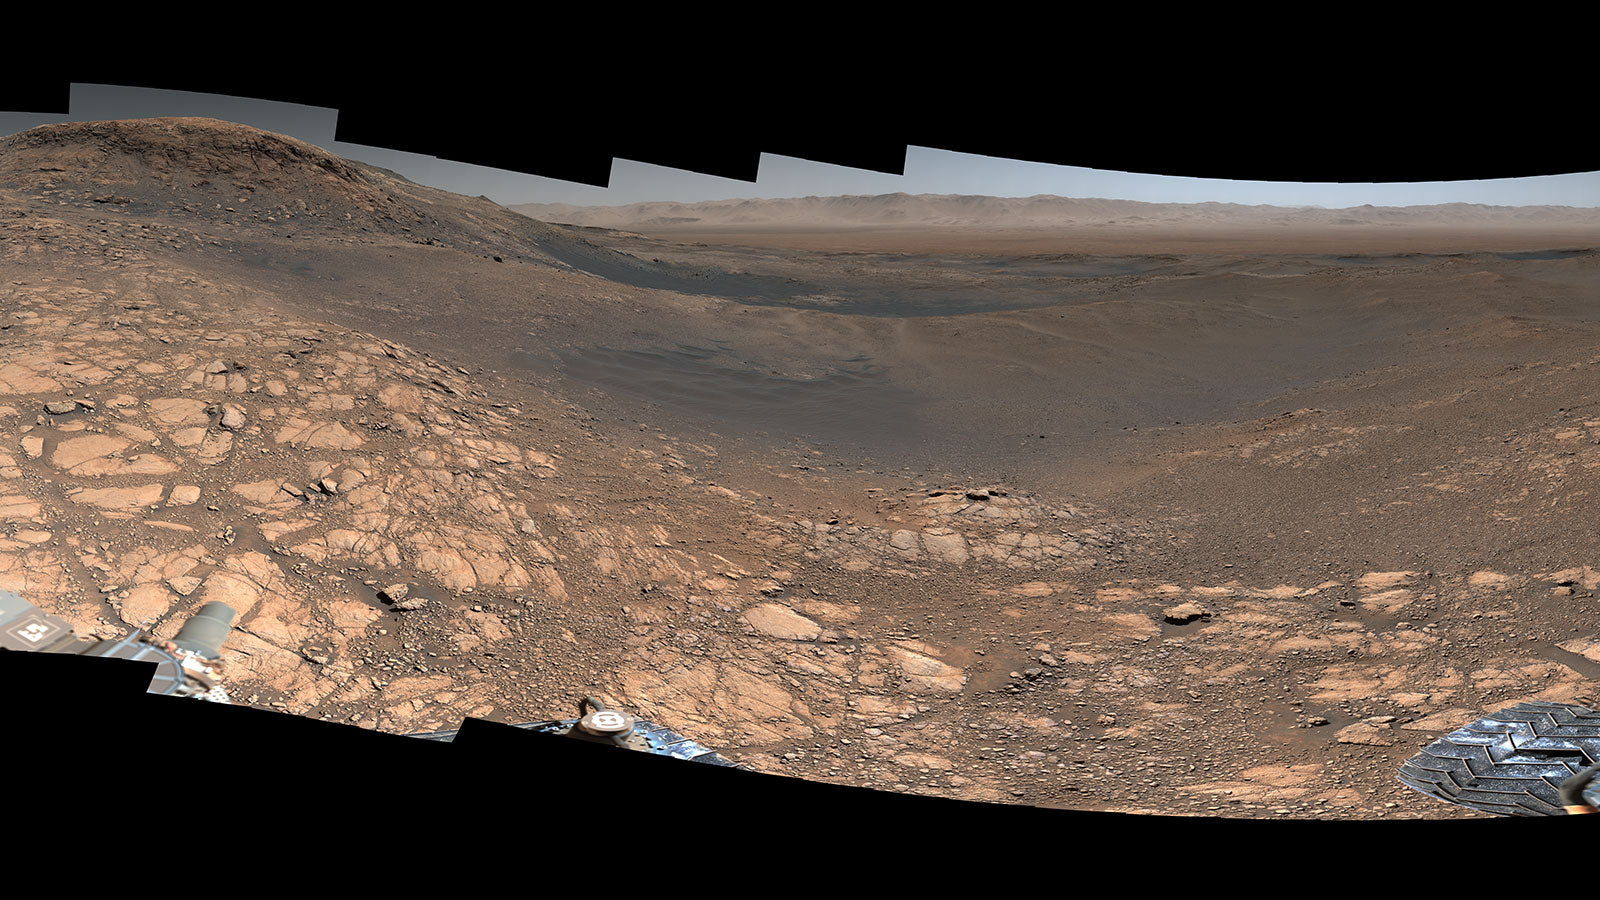 NASA's Curiosity rover captures stunning 1.8-Billion-Pixels photograph of Mars